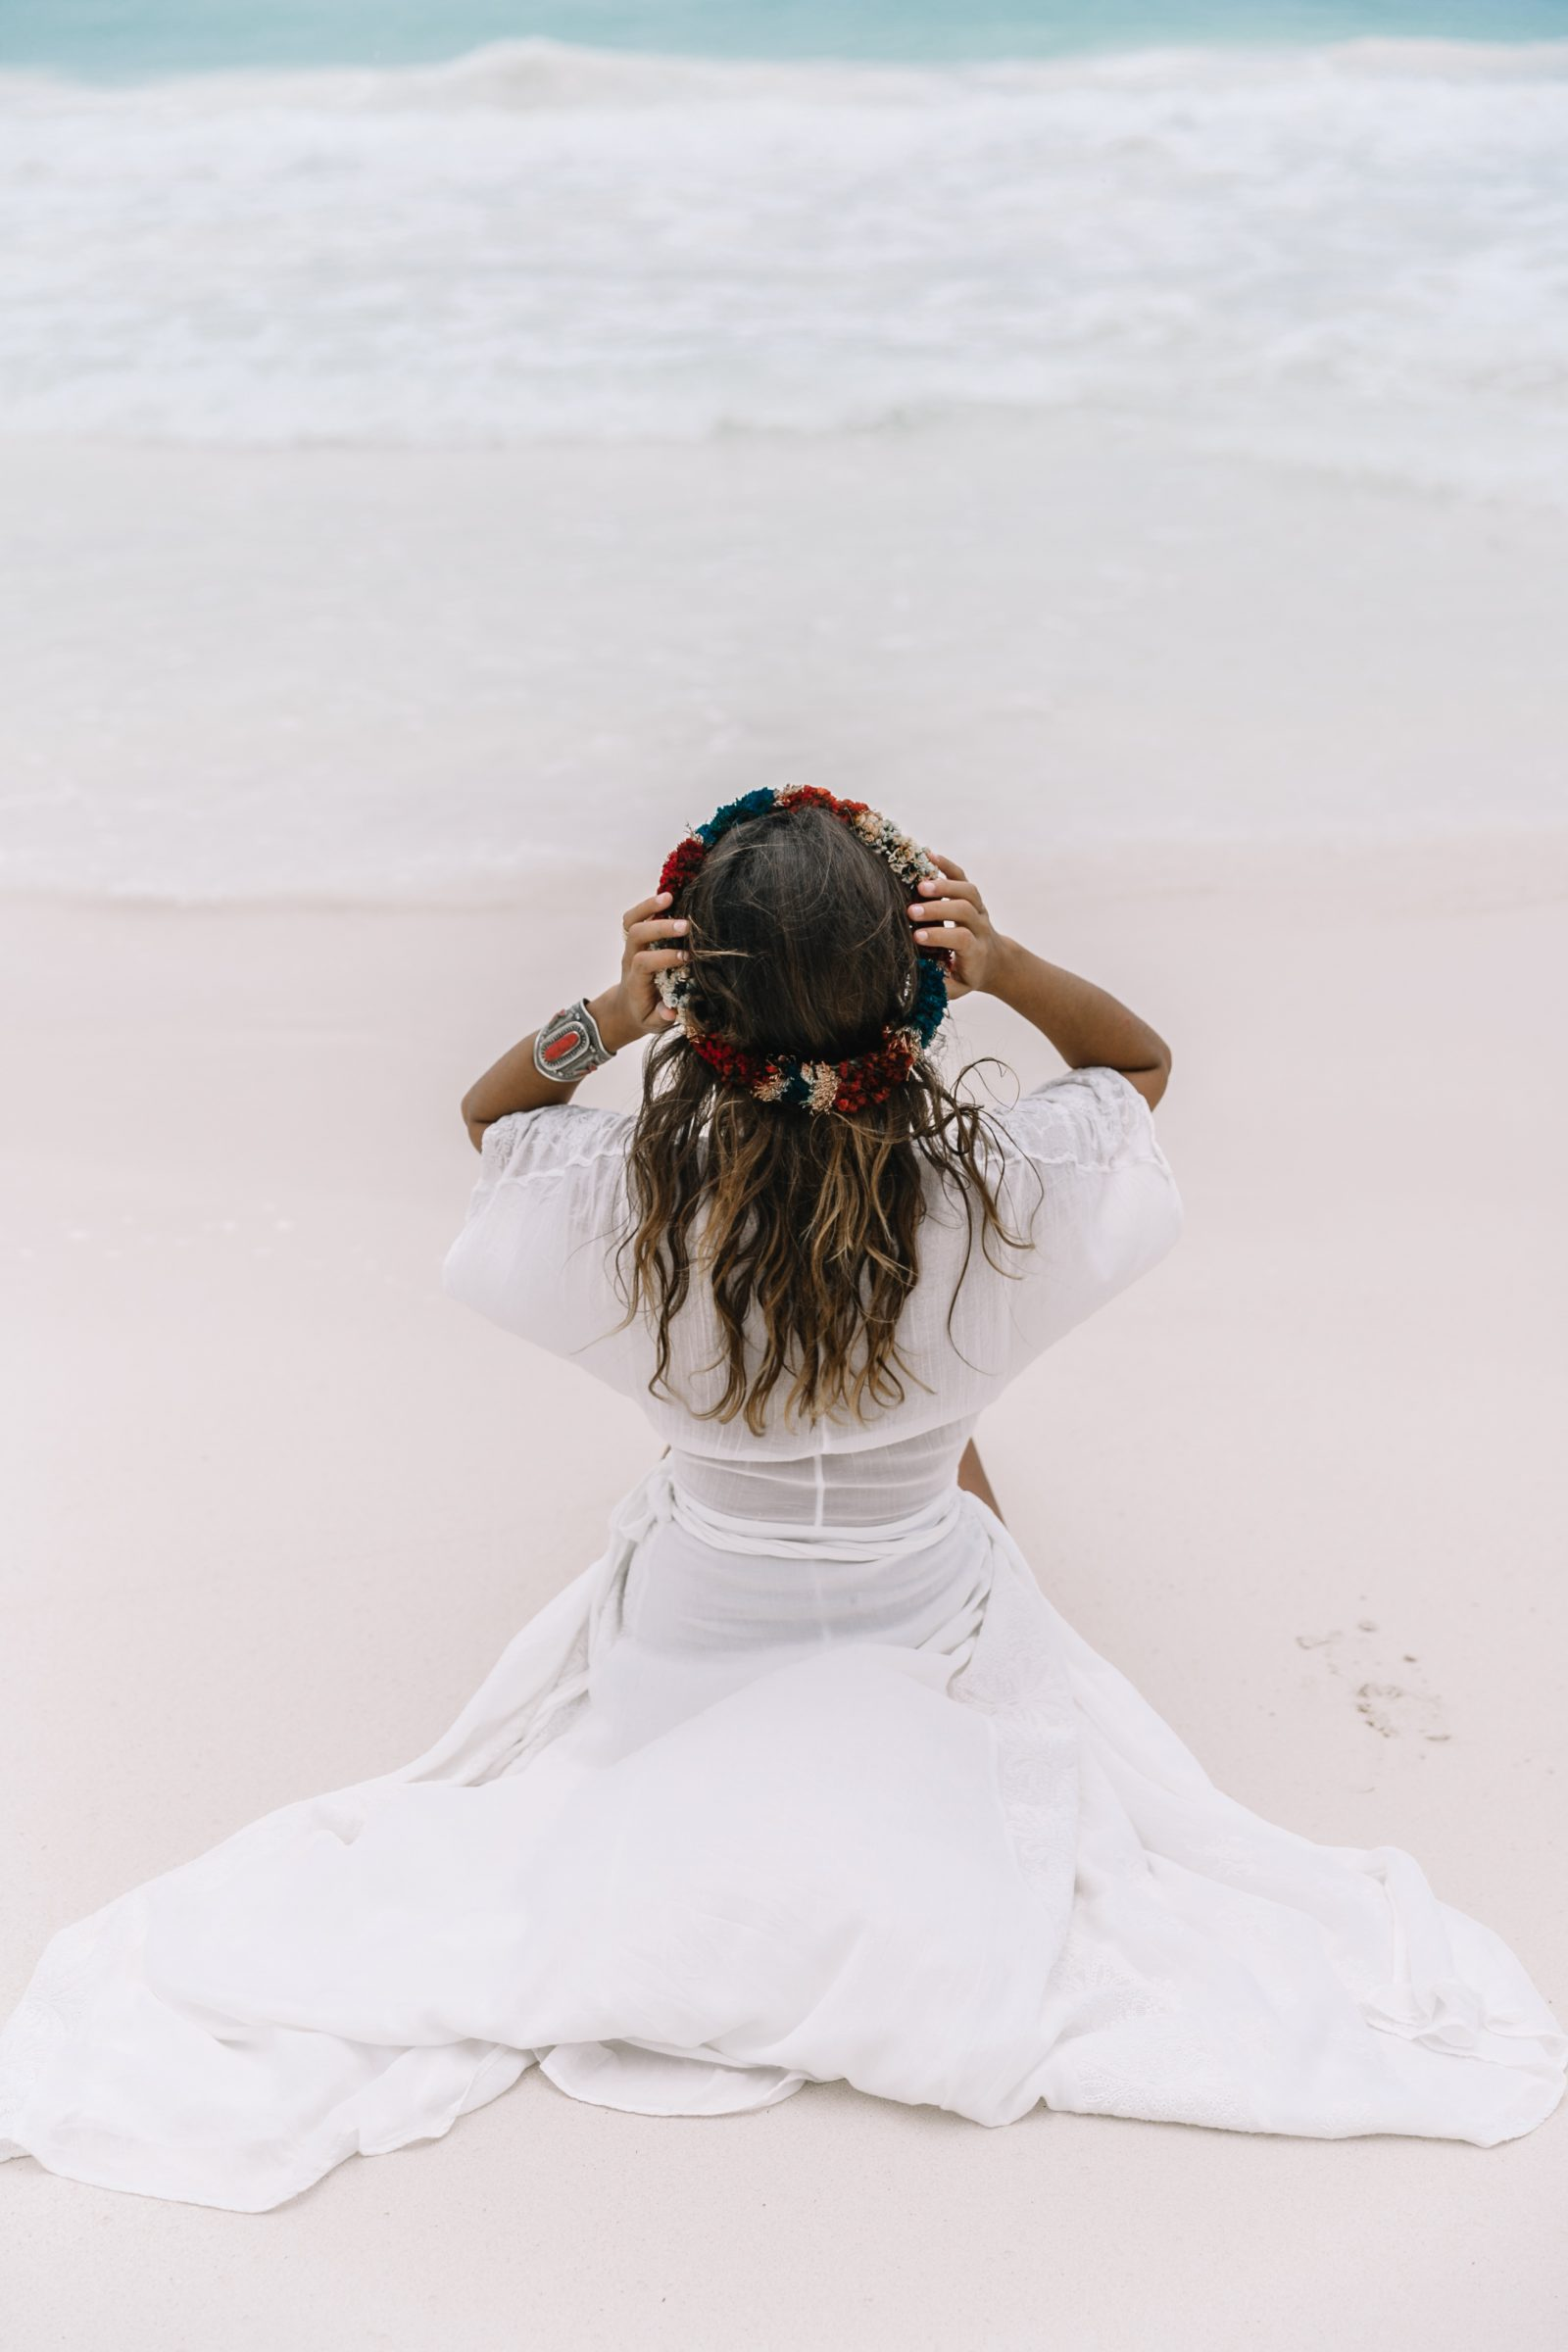 white_long_dress-boho_style-tulum_mexico-beach-floral_crown-outfit-collage_vintage-63